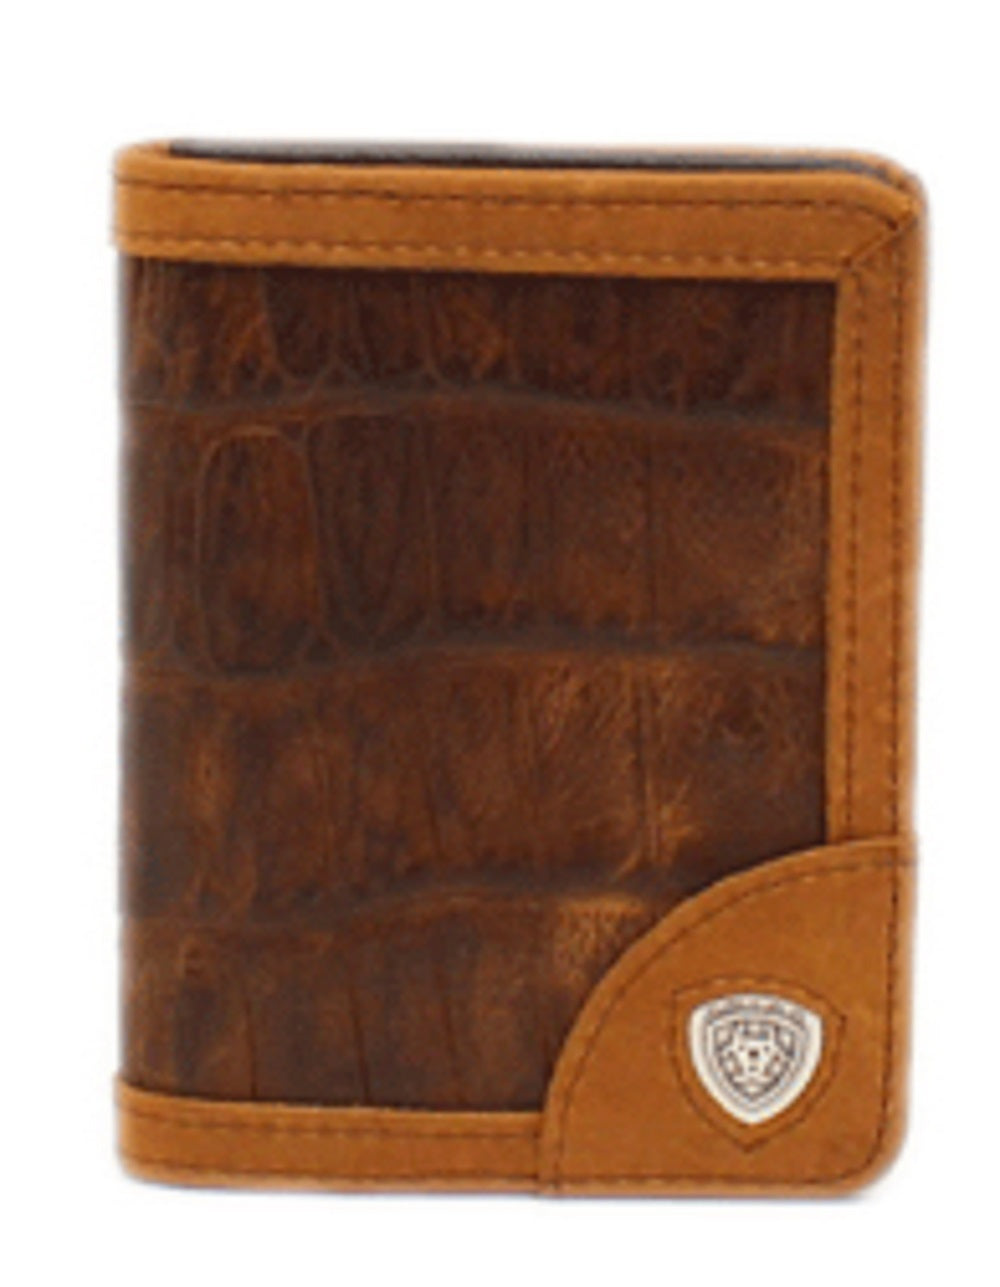 M&F WESTERN MEN'S ARIAT BIFOLD CROCODILE PRINT WALLET - STYLE #A3525802 - BROWN